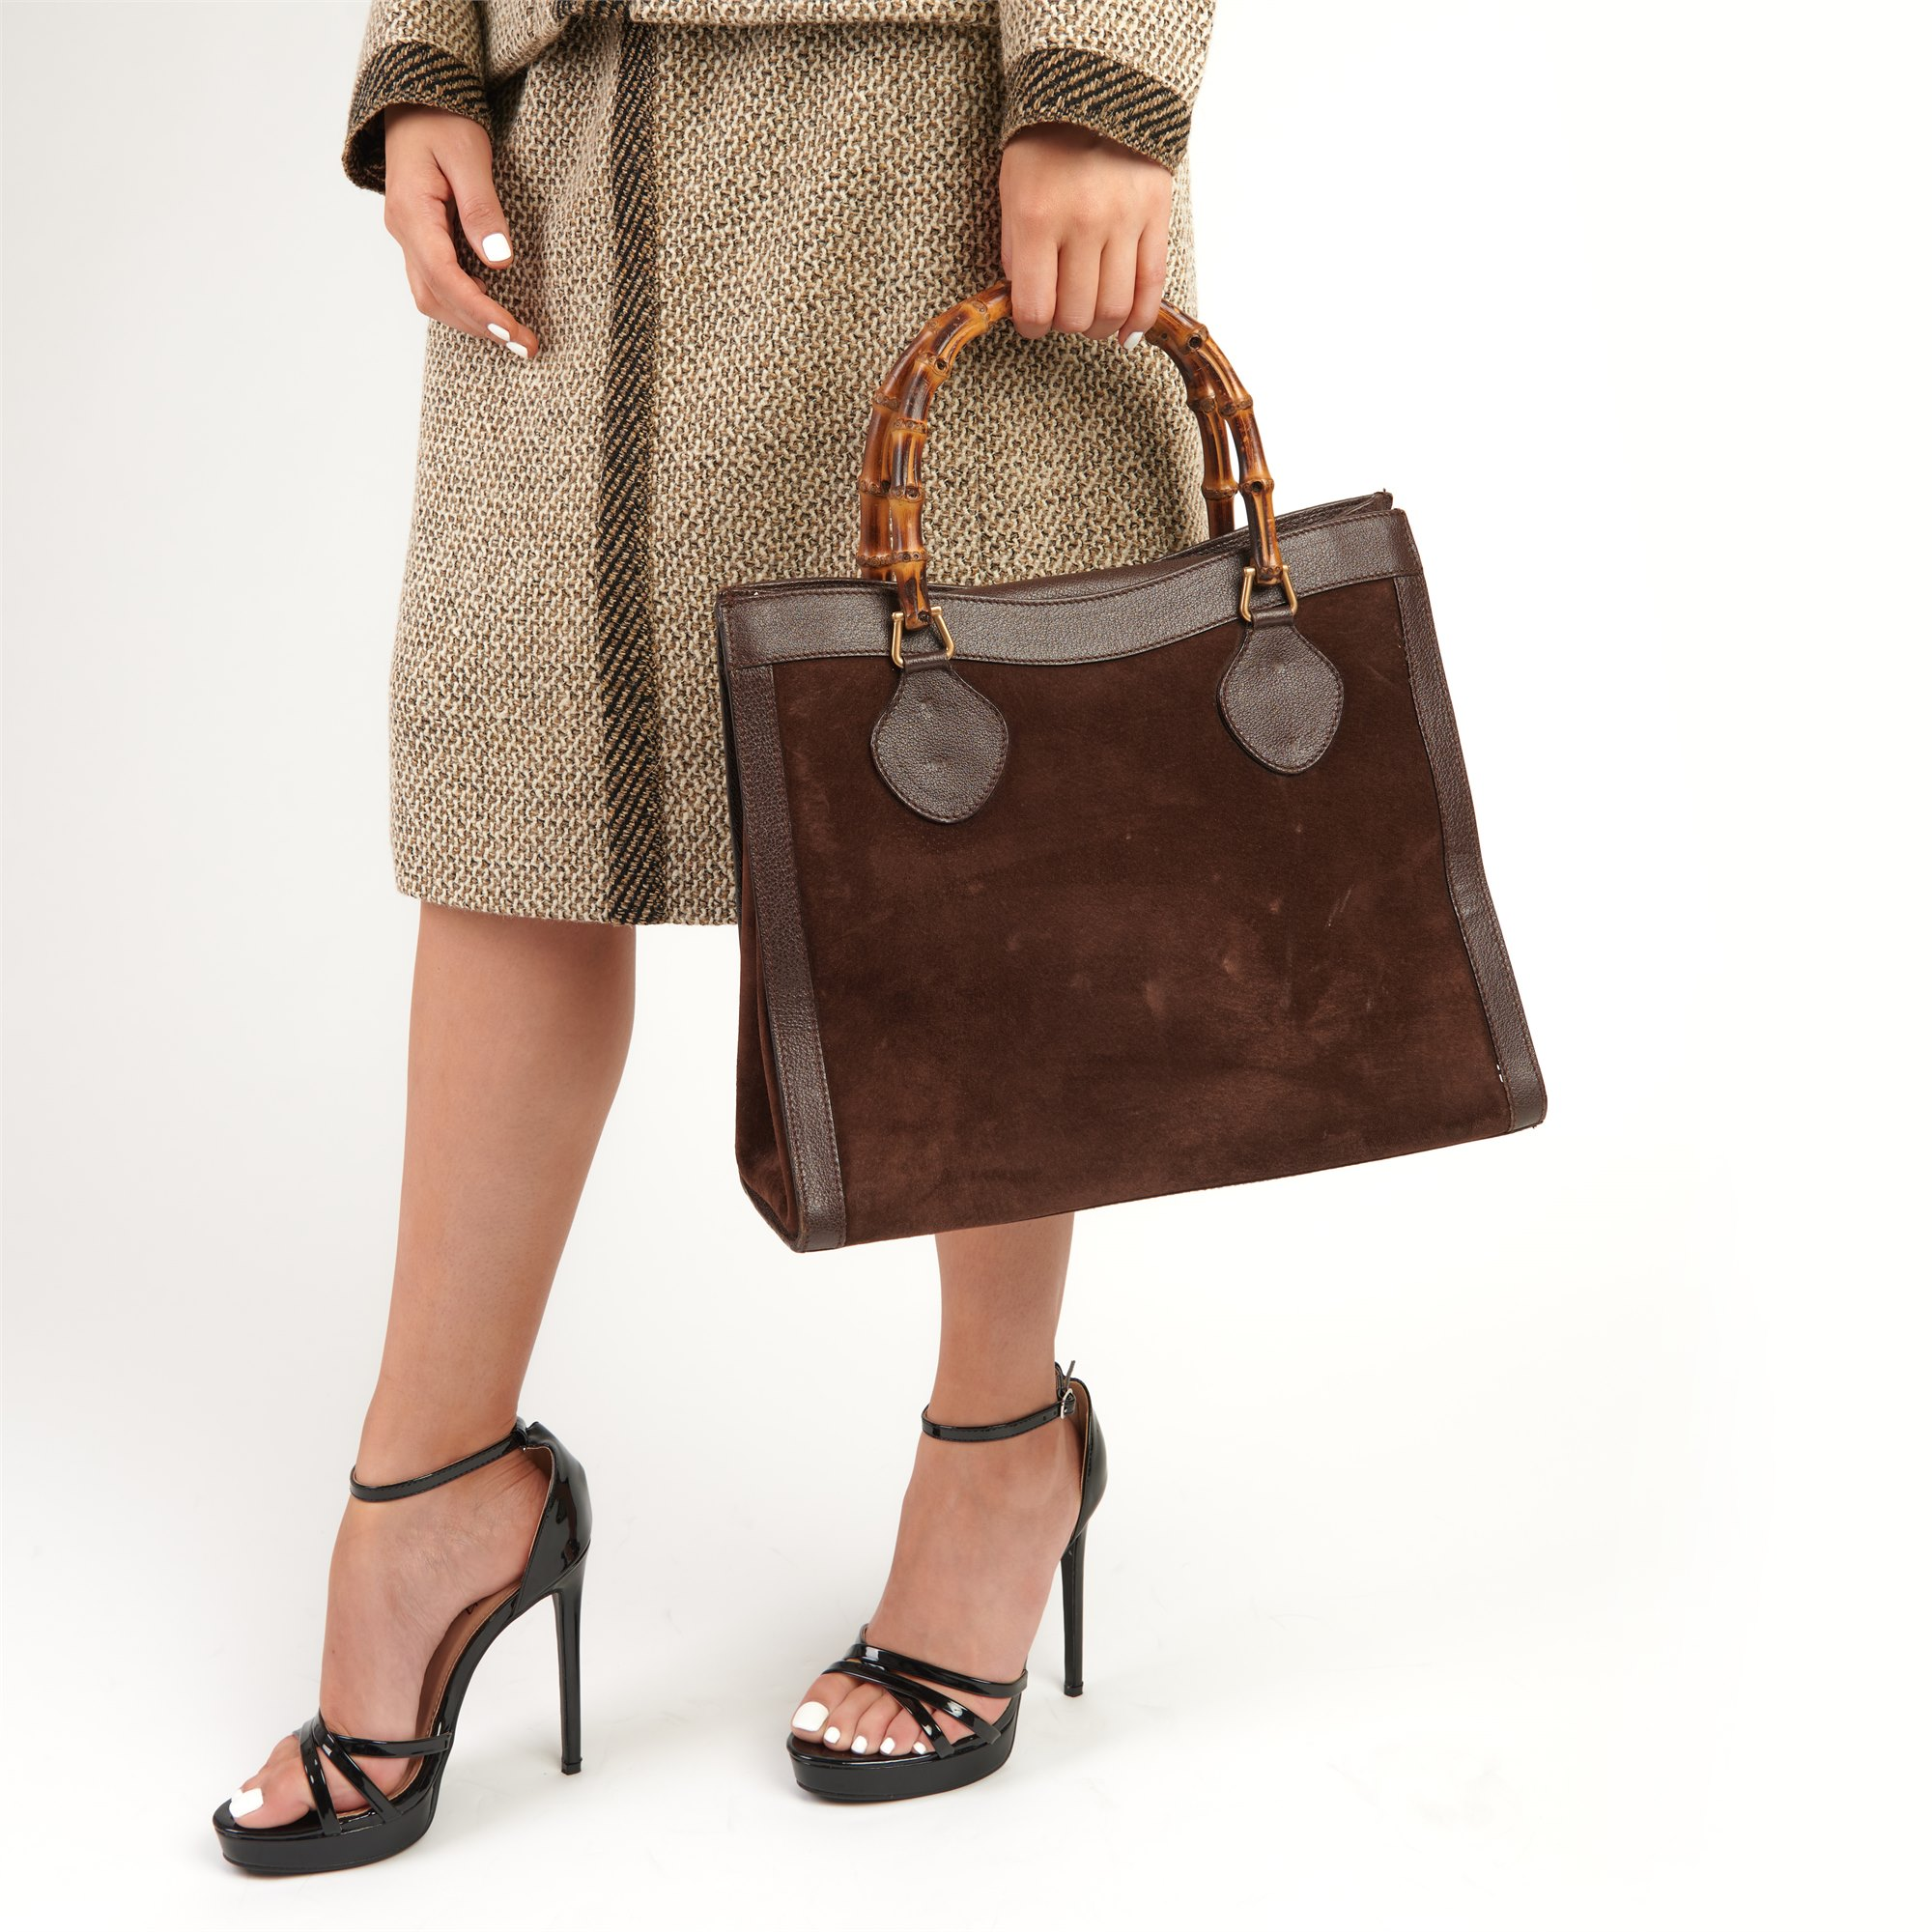 Gucci Brown Pigskin Leather & Suede Vintage Bamboo Tote